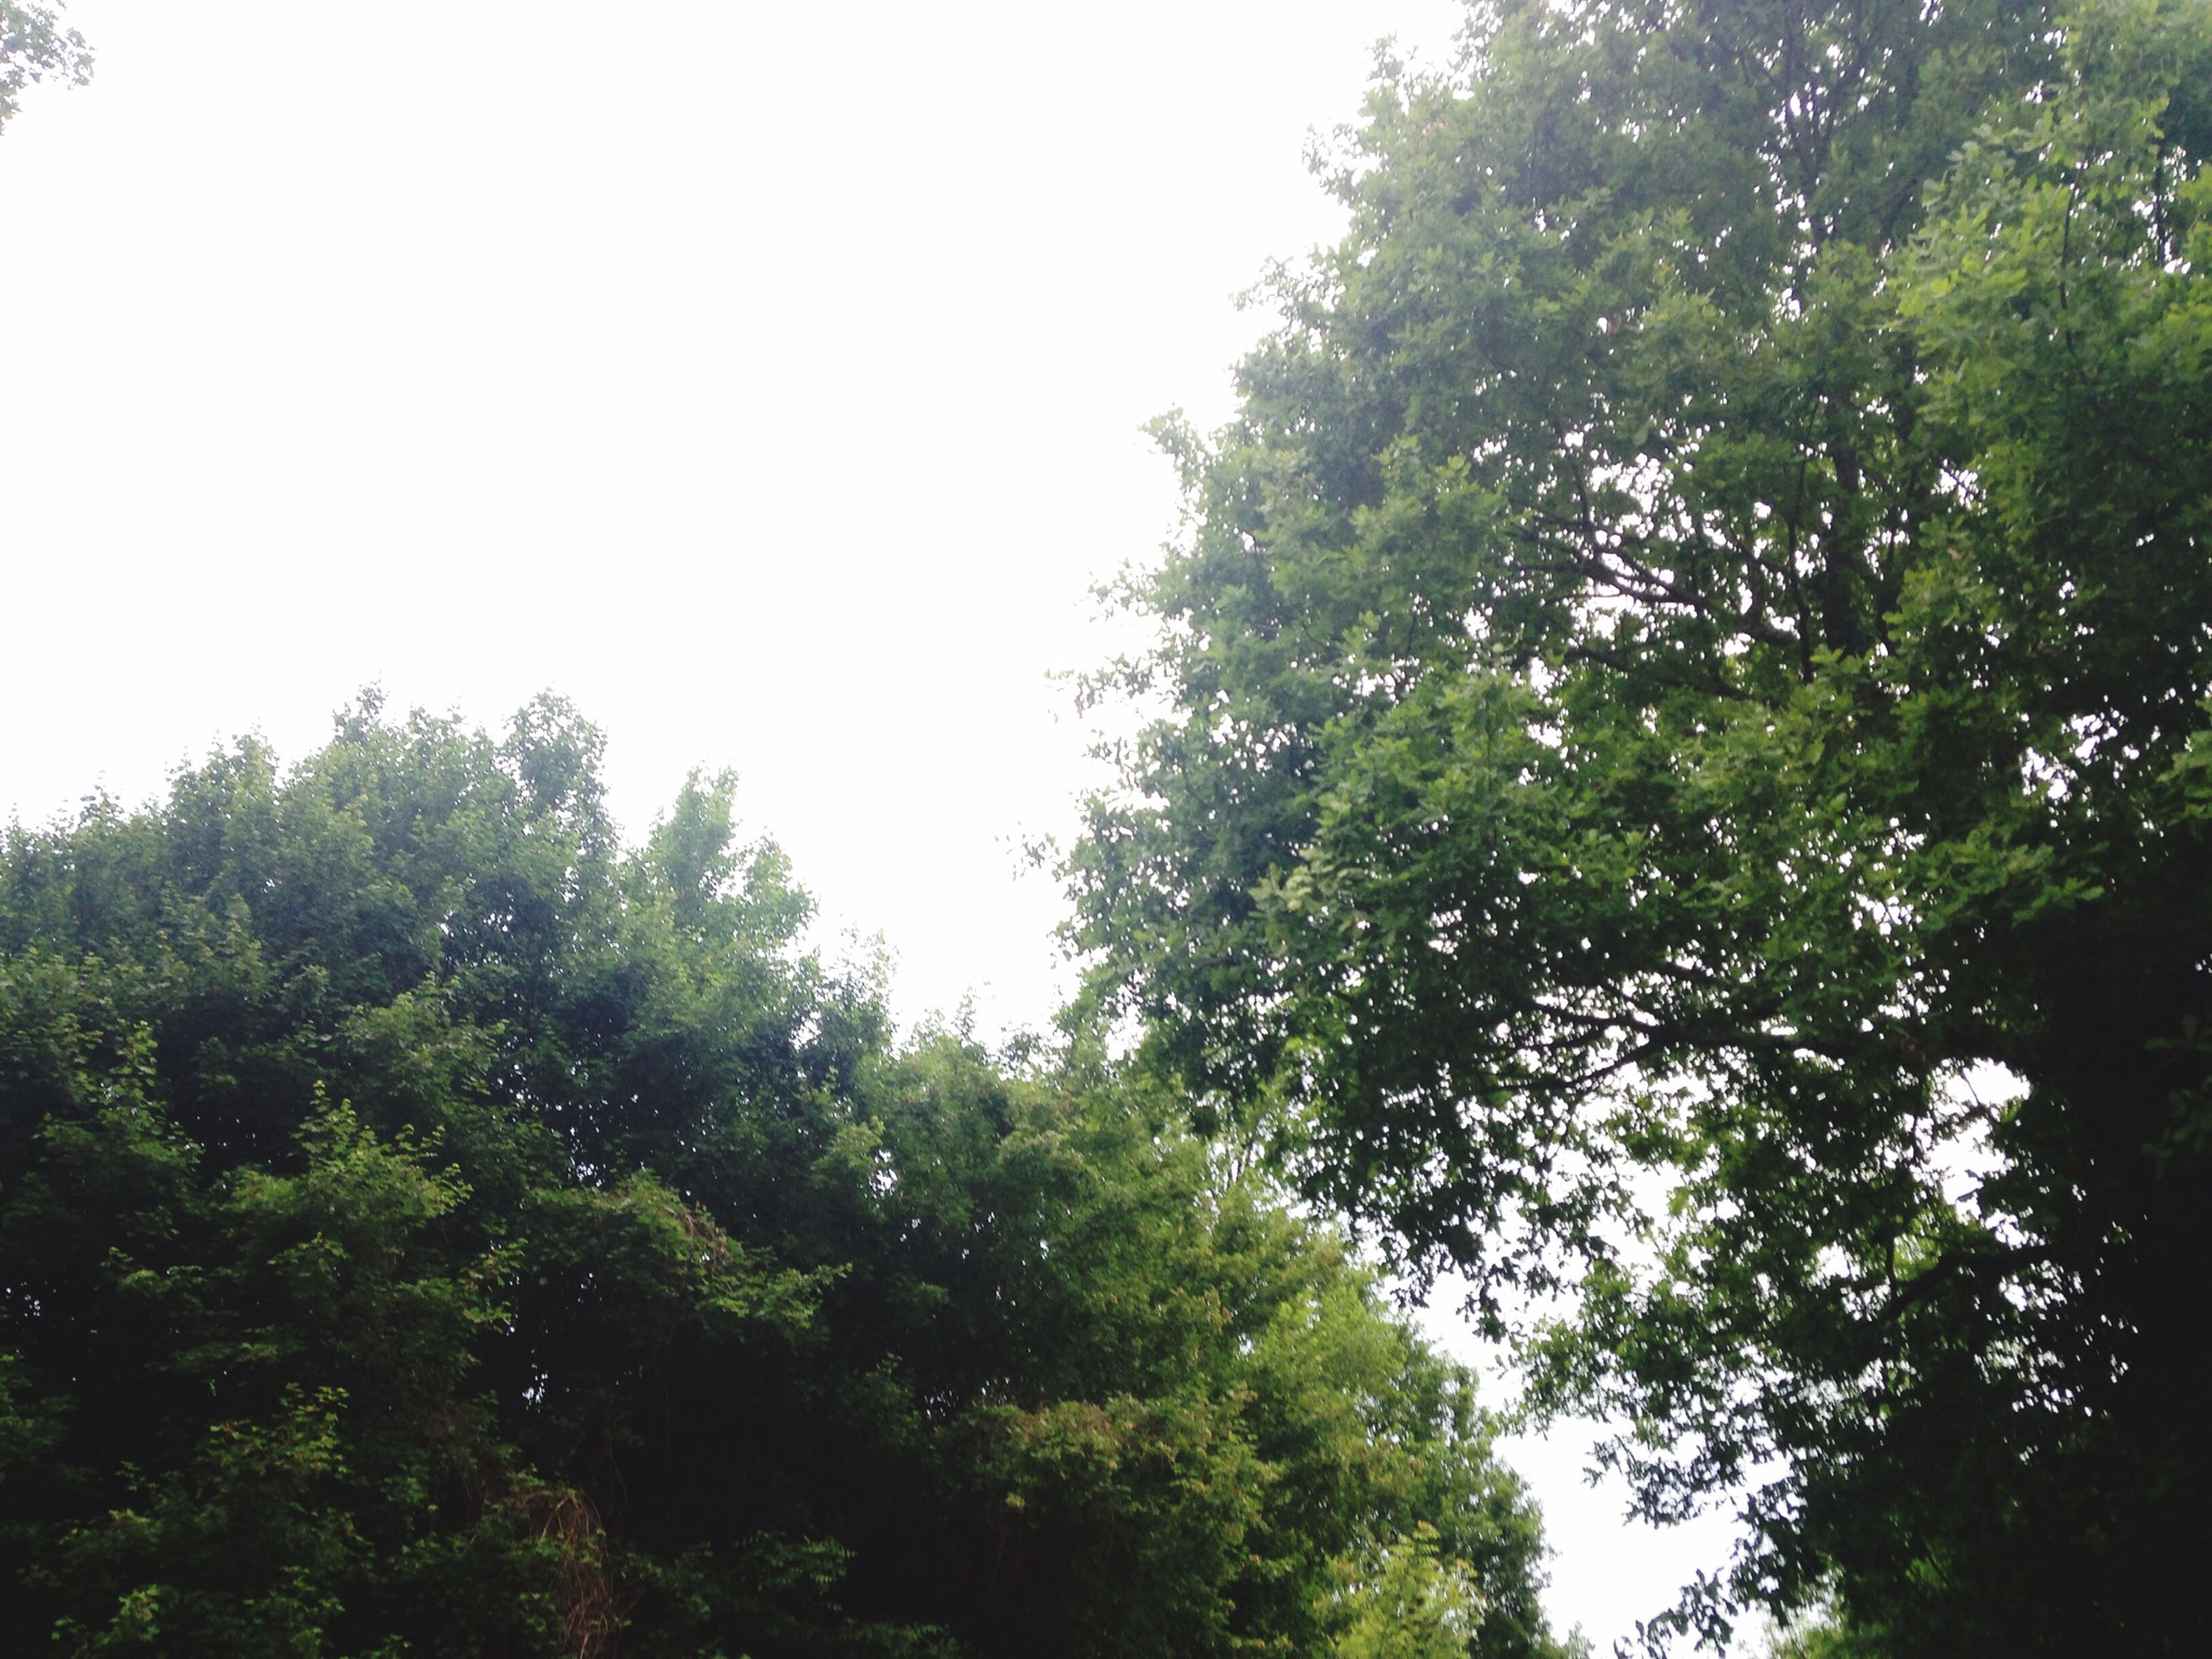 tree, low angle view, clear sky, growth, green color, lush foliage, tranquility, nature, branch, beauty in nature, copy space, tranquil scene, forest, green, scenics, day, outdoors, no people, sky, leaf